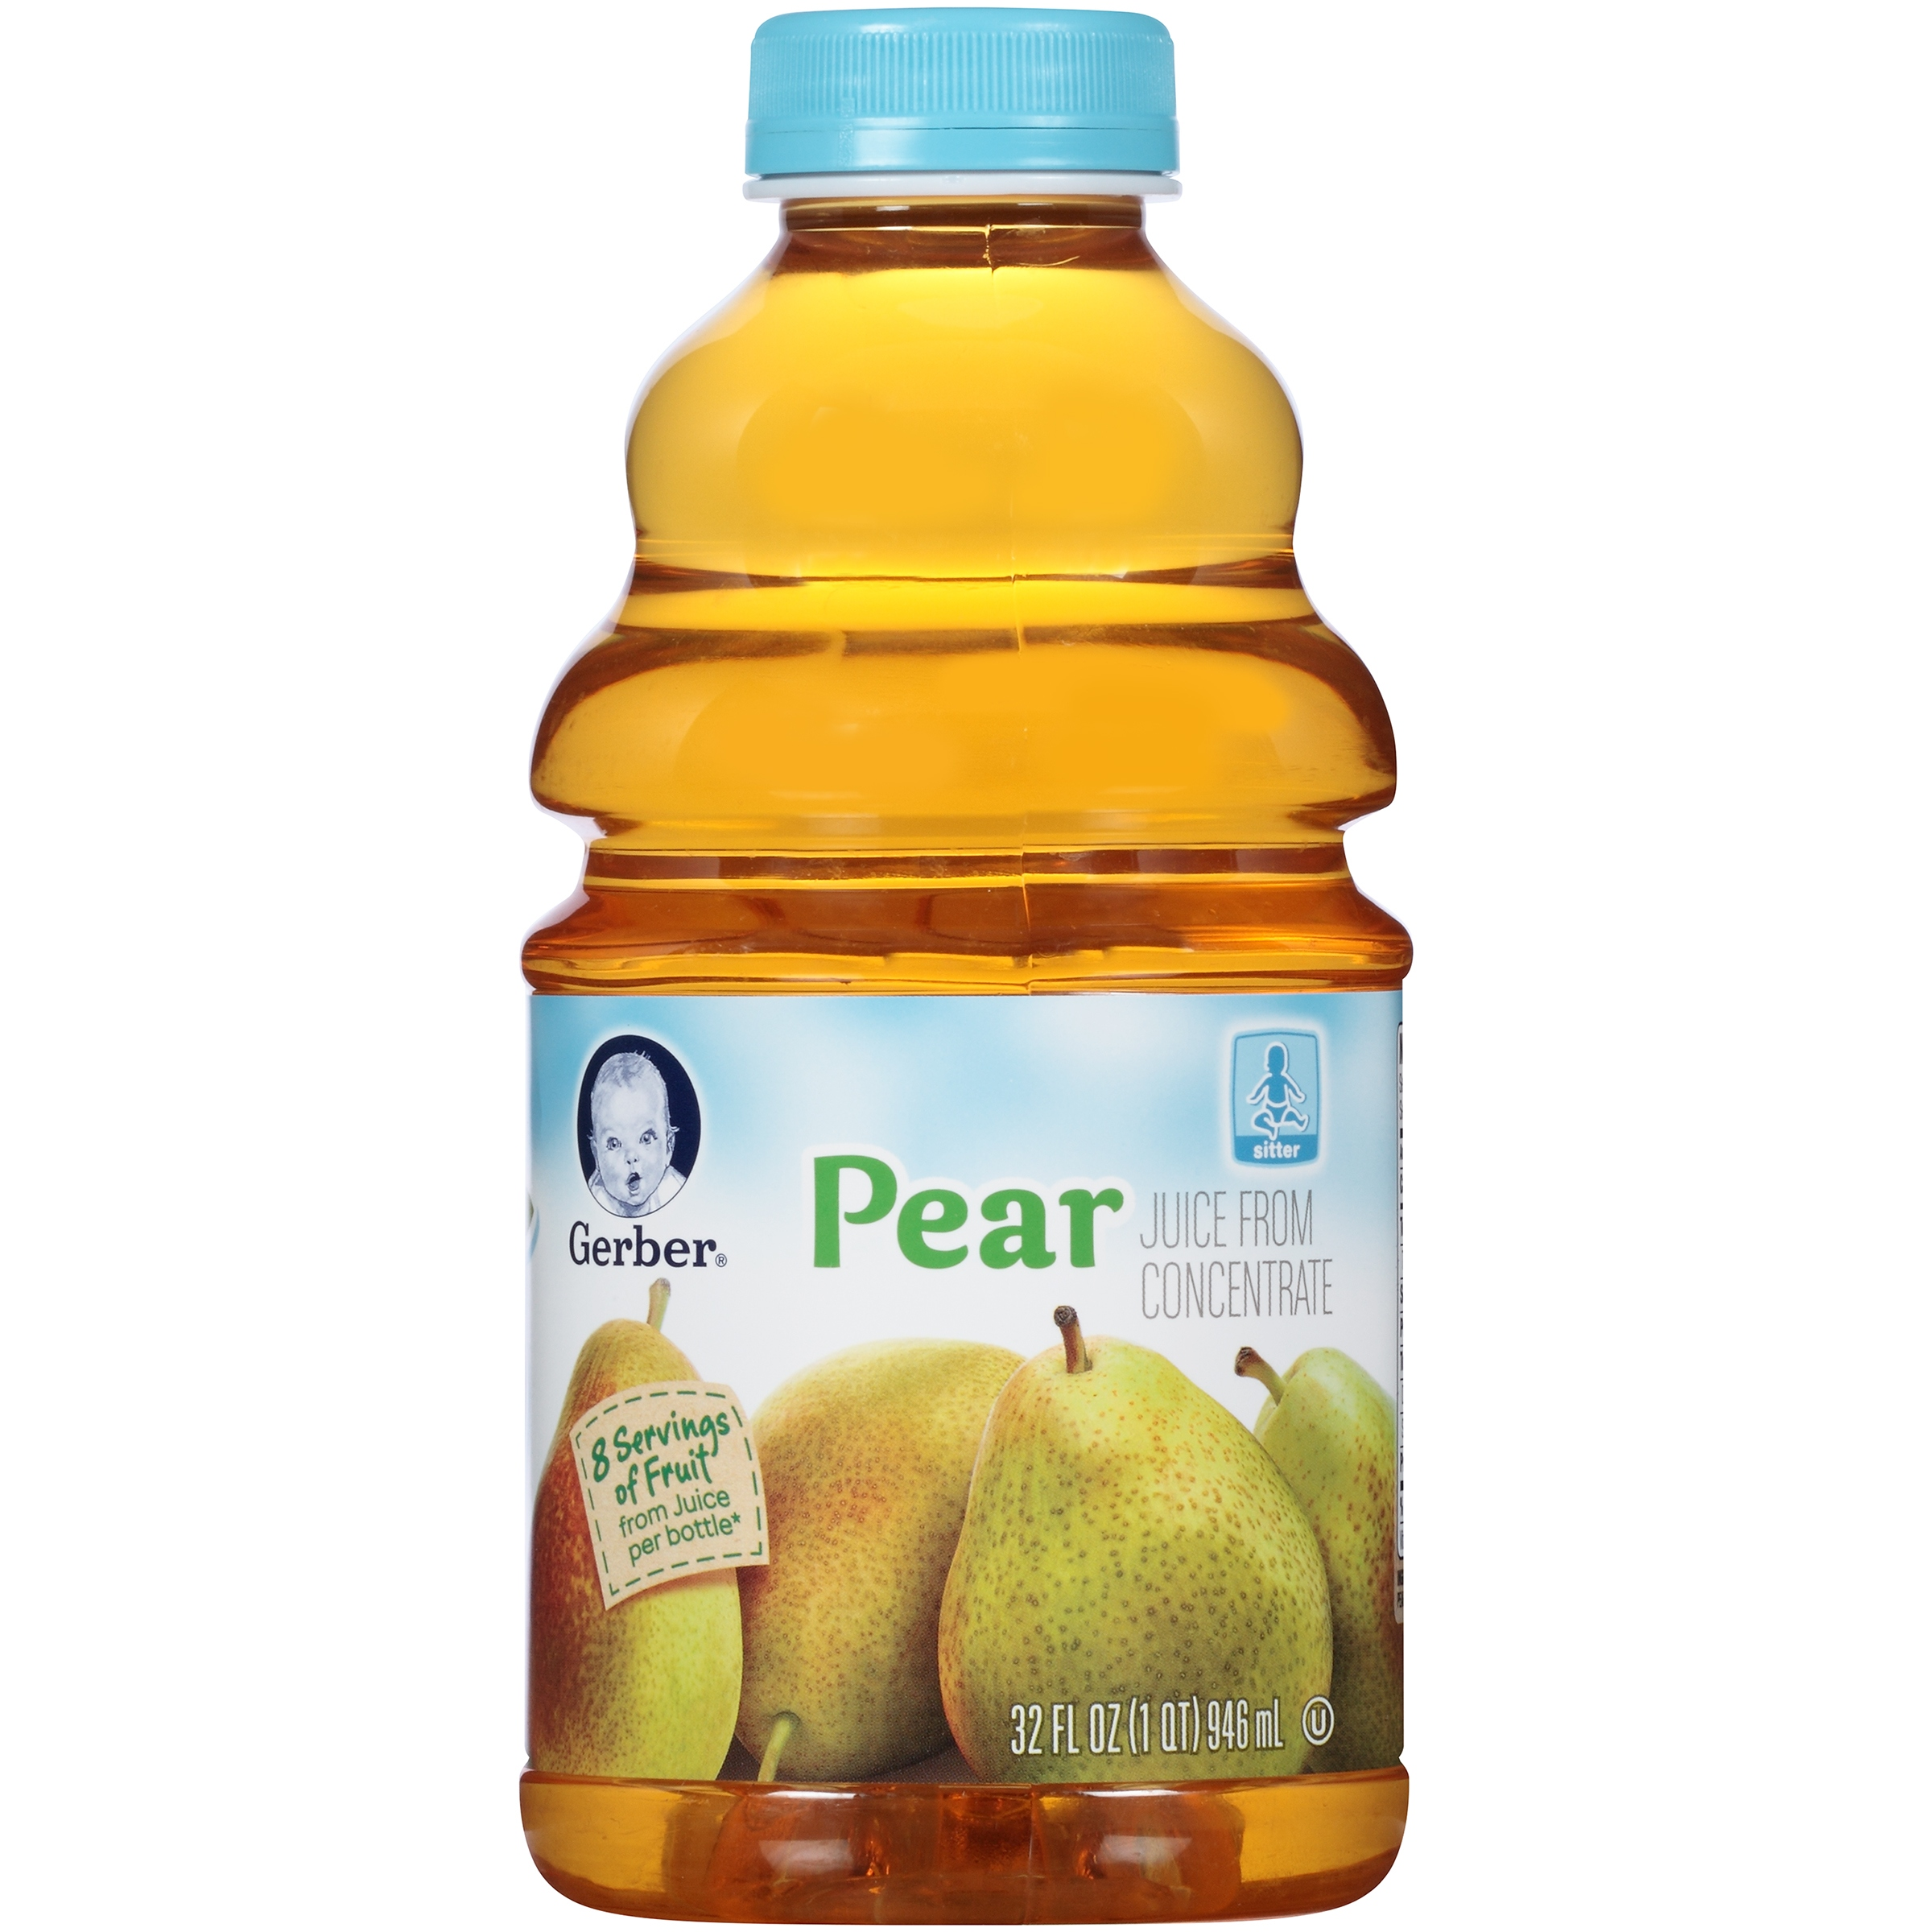 Gerber Juice From Concentrate Pear, 32.0 FL OZ by Gerber Products Co.